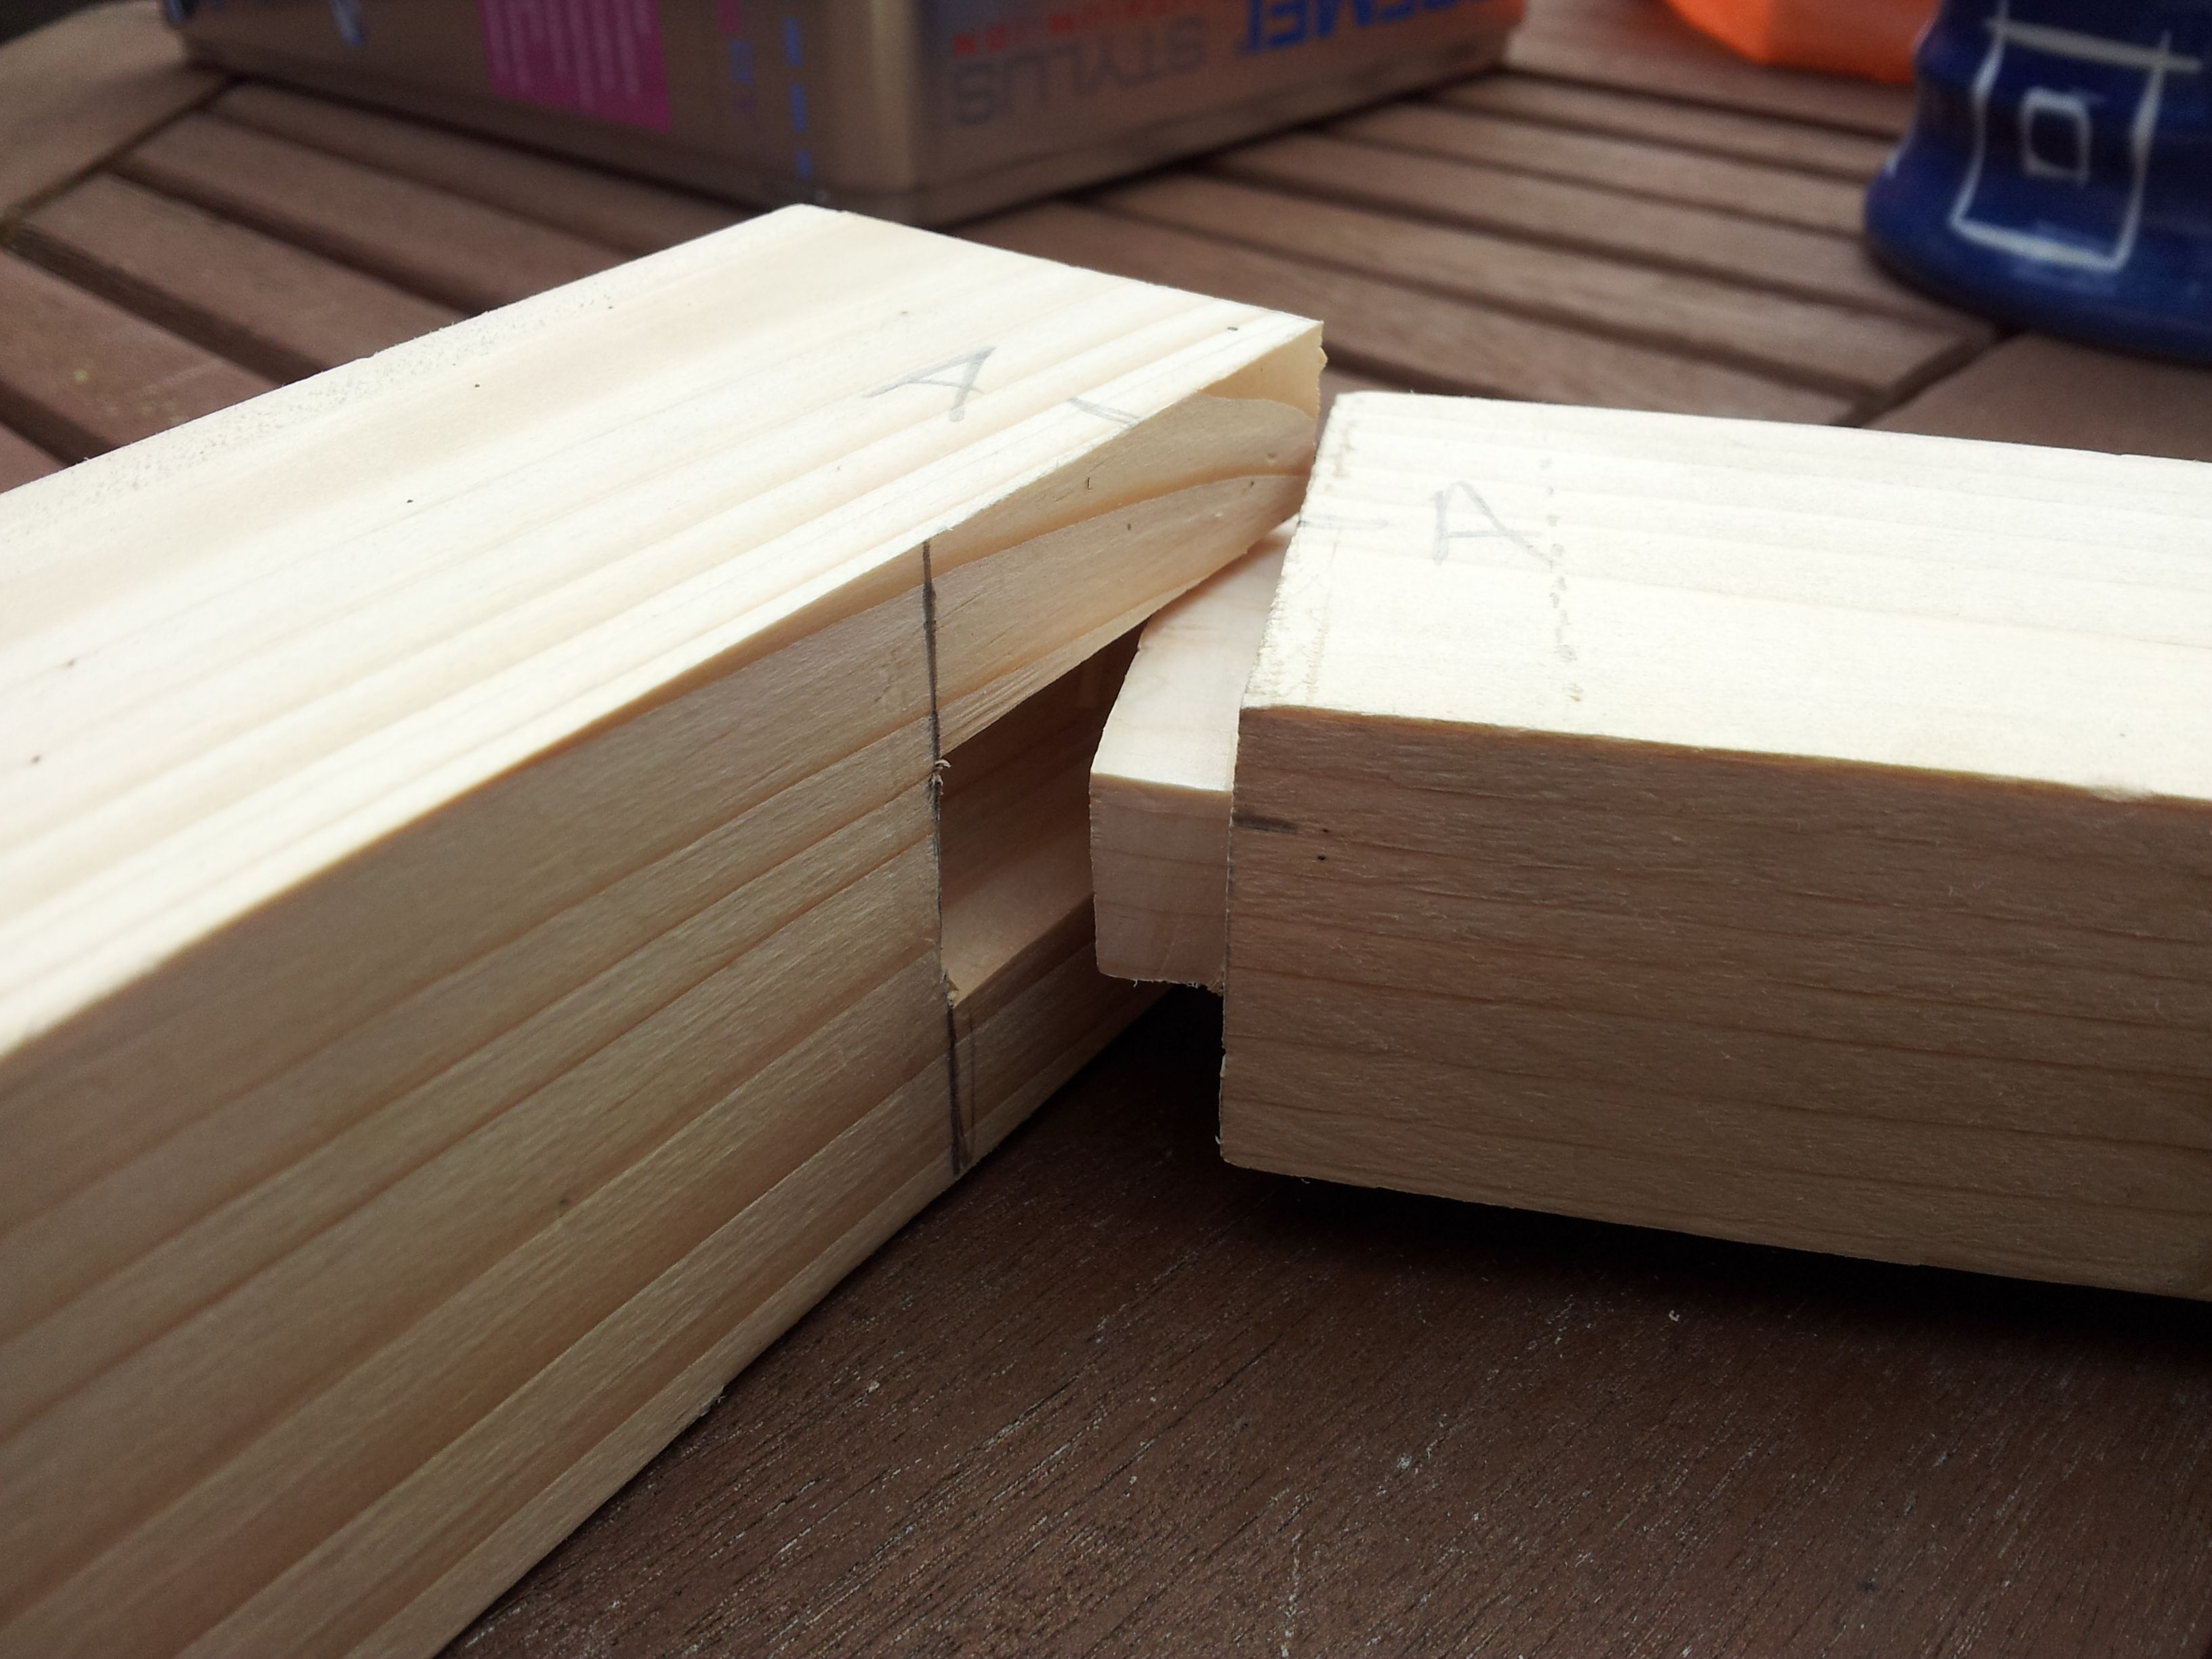 How to make a mortise and tenon woodworking joint why the mortise and tenon works